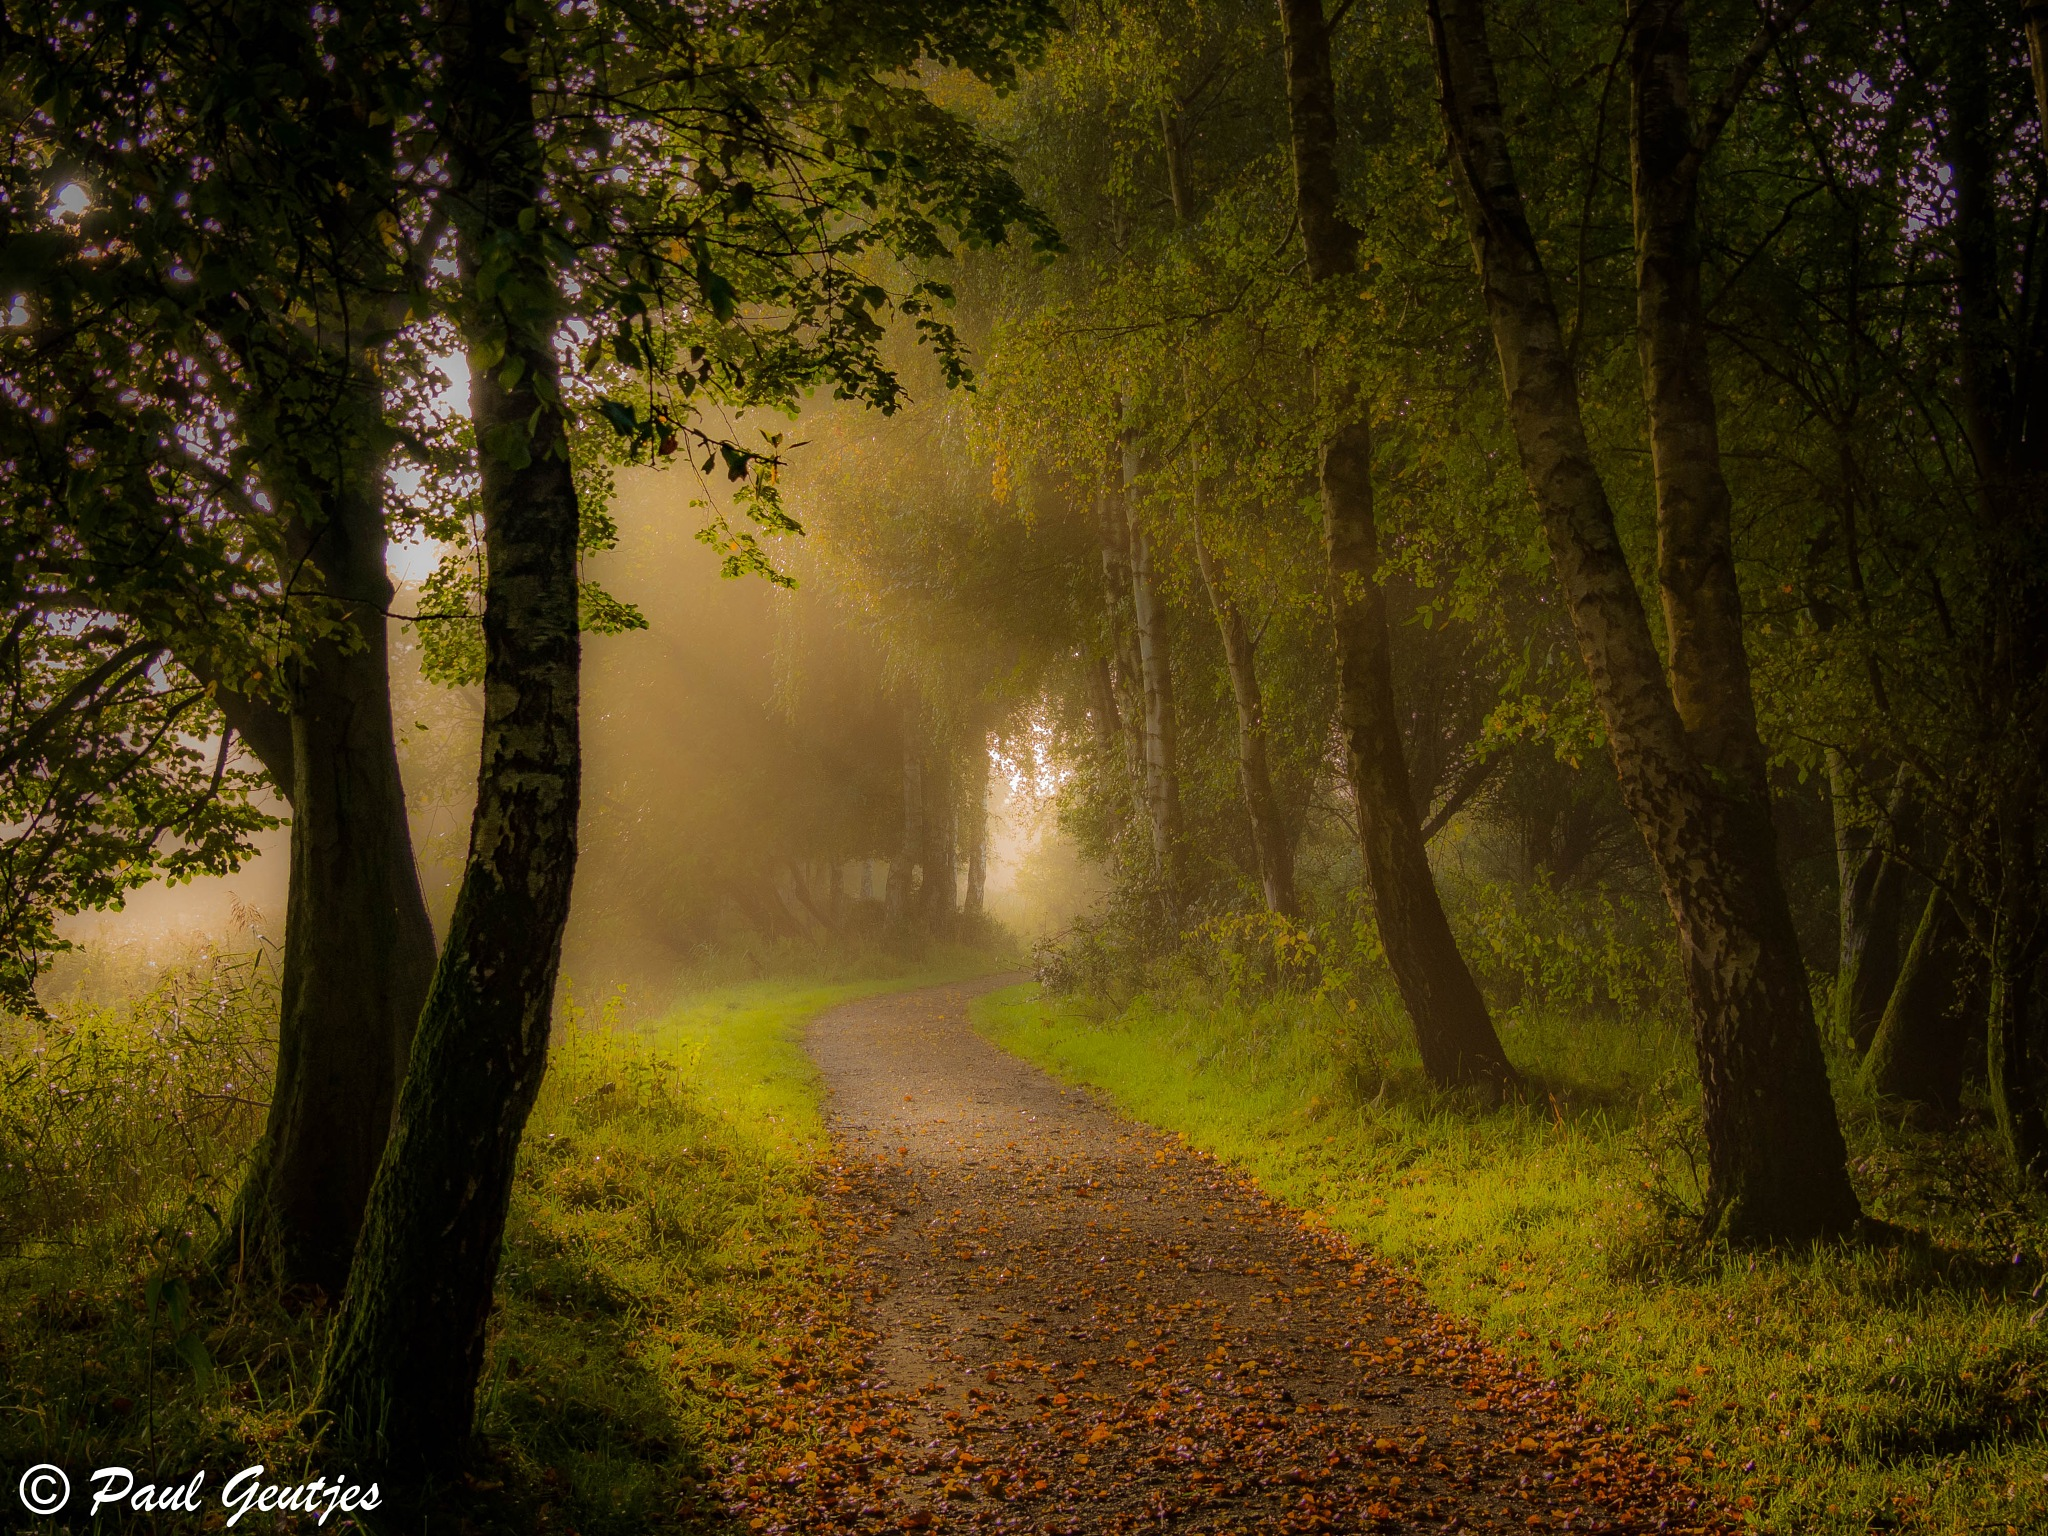 Morning mist in the forrest by Paul Geutjes